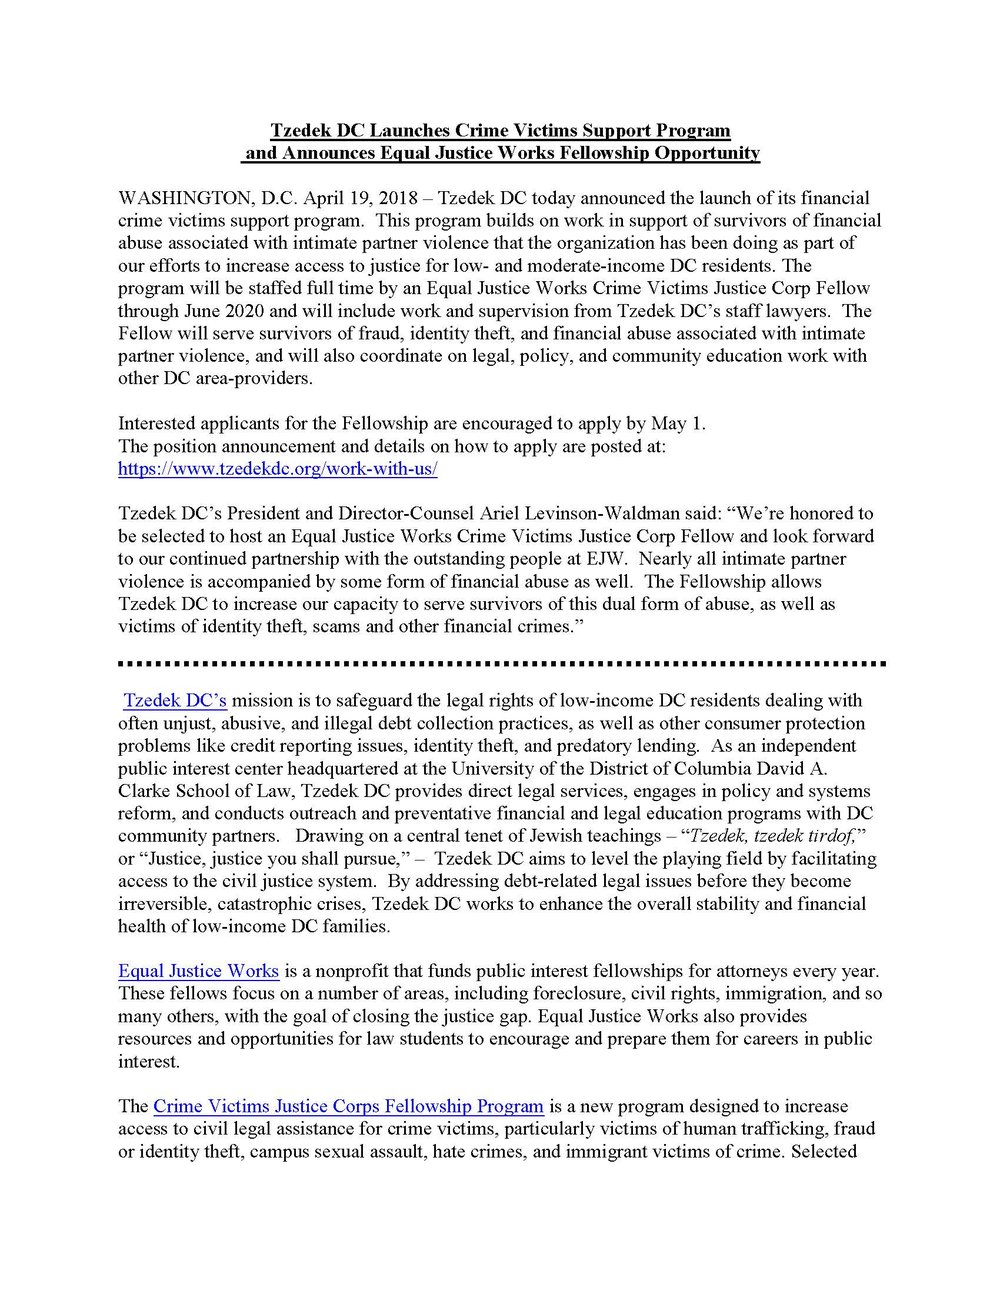 Equal Justice Works Crime Victims Press Release_Page_1.jpg